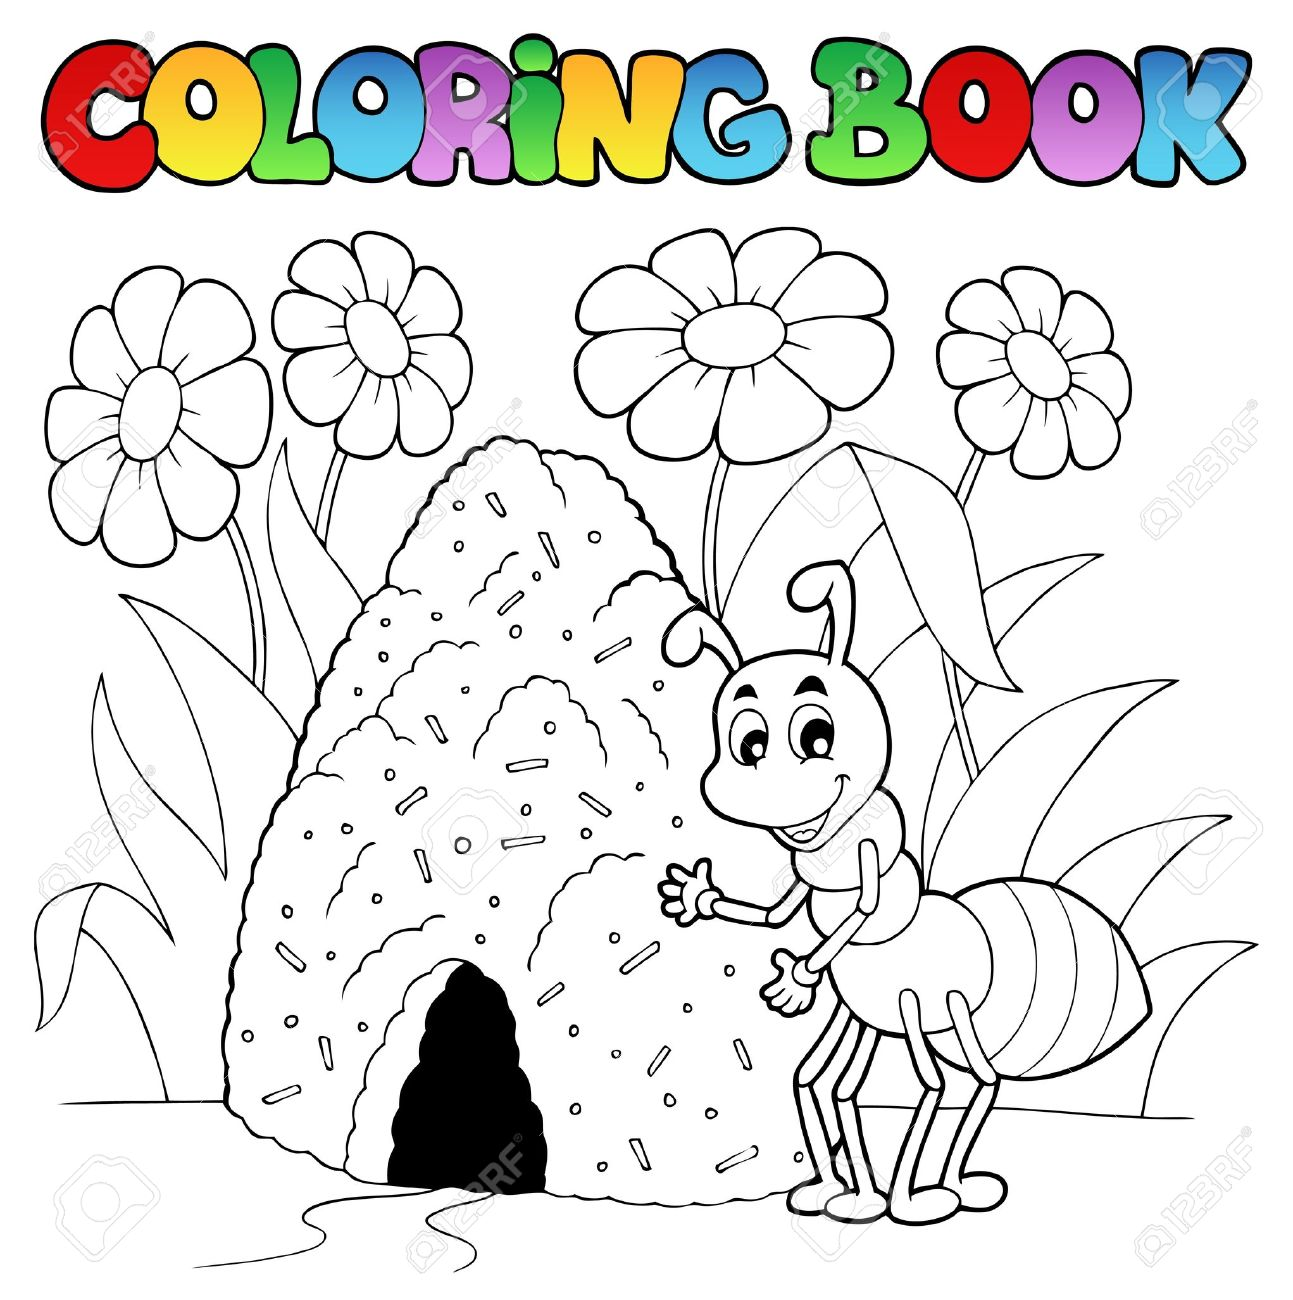 Coloring Book Ant Near Anthill Stock Photo Picture And Royalty